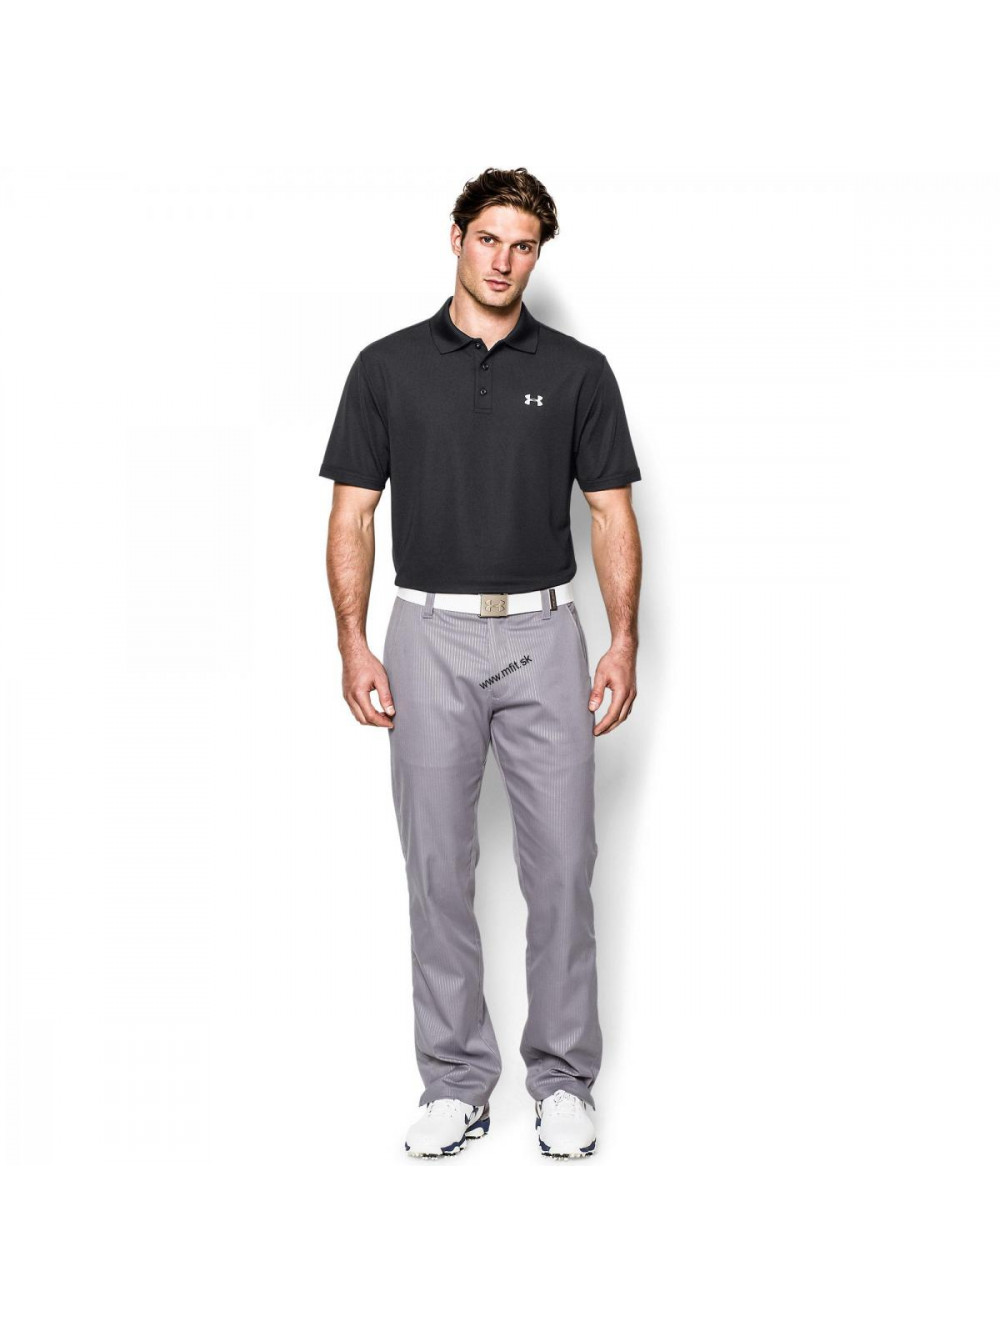 Tričko Under Armour Tech Polo černé